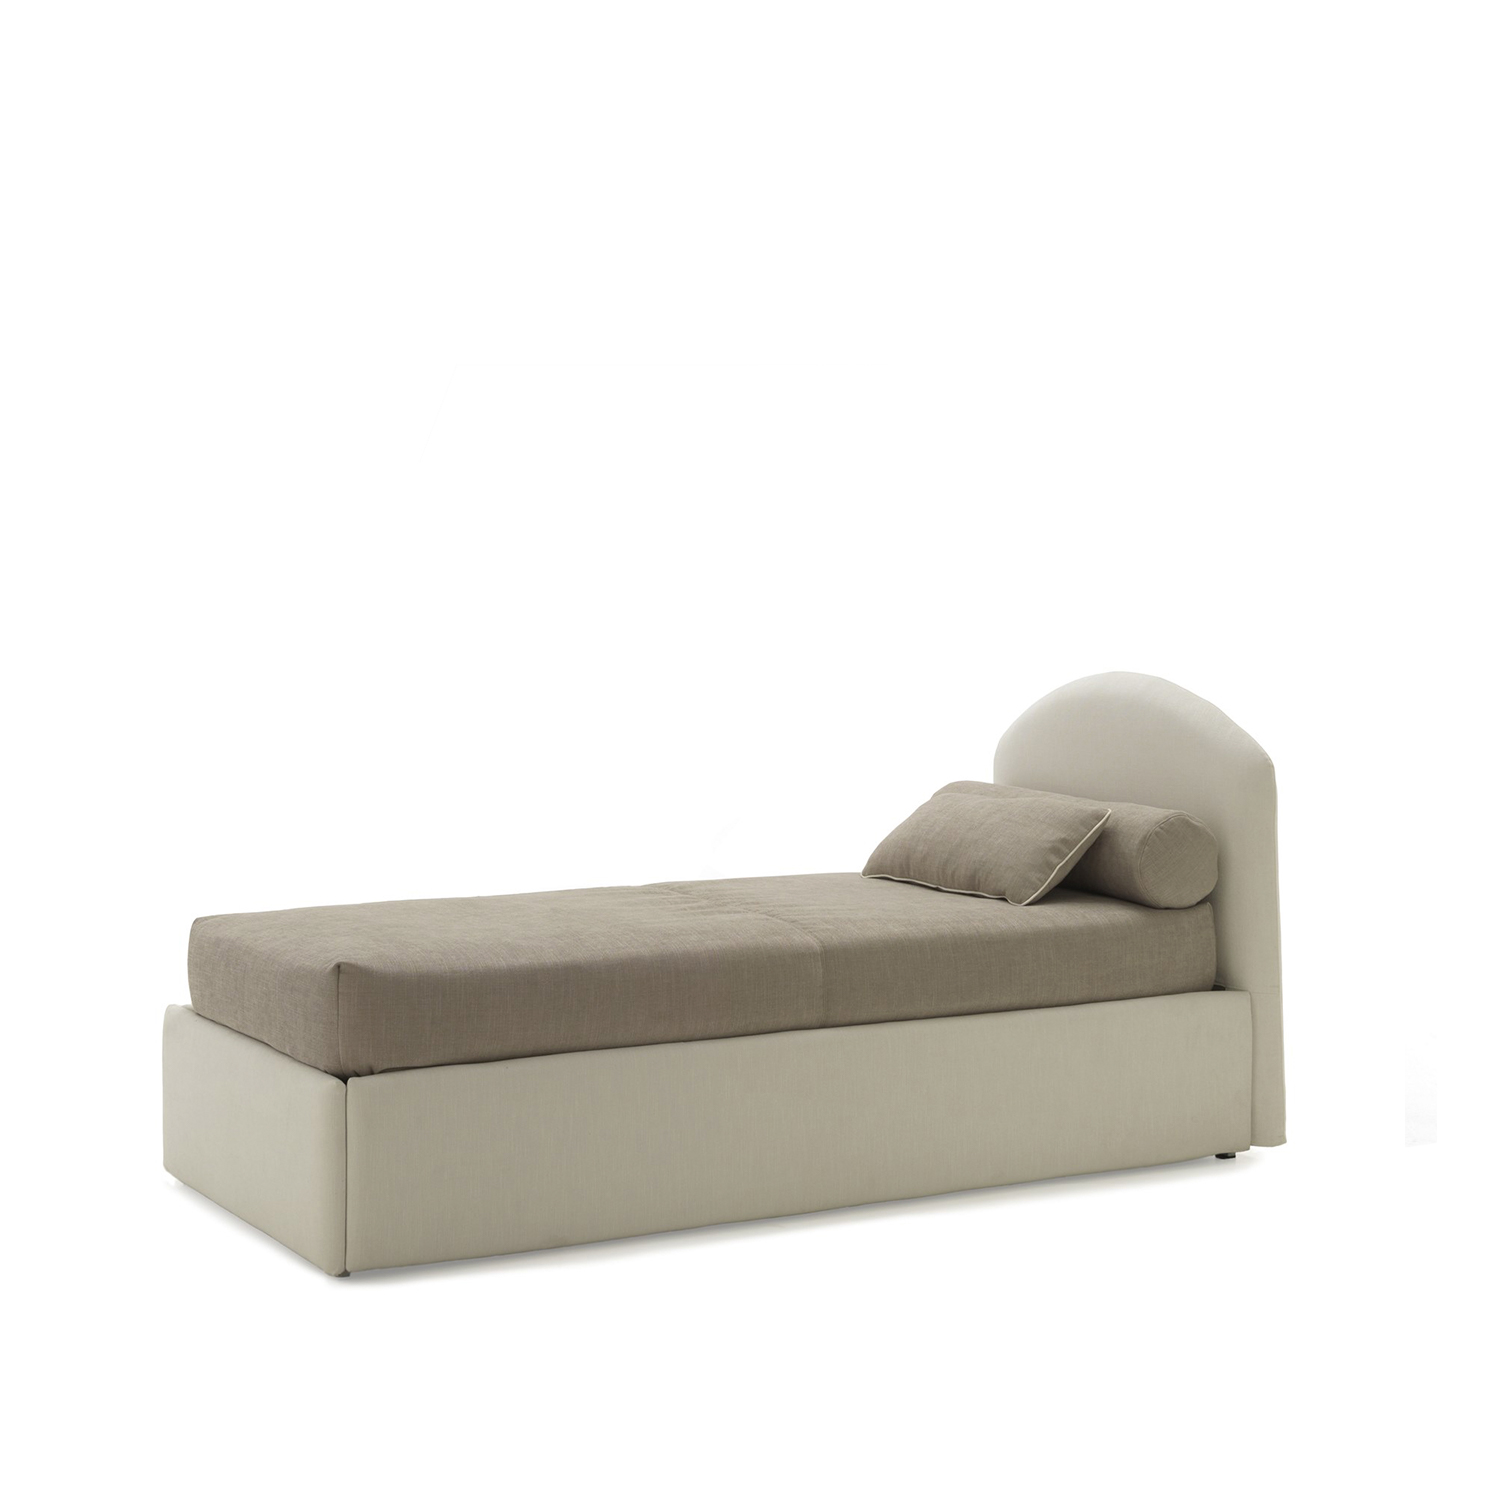 Neolia Sofa bed - The rounded headboard characterises the Neolia Program of sinlge beds, that offers many ideas for furnishing children's bedroom.‎ The apparent simplicity has been achieved by careful research.‎